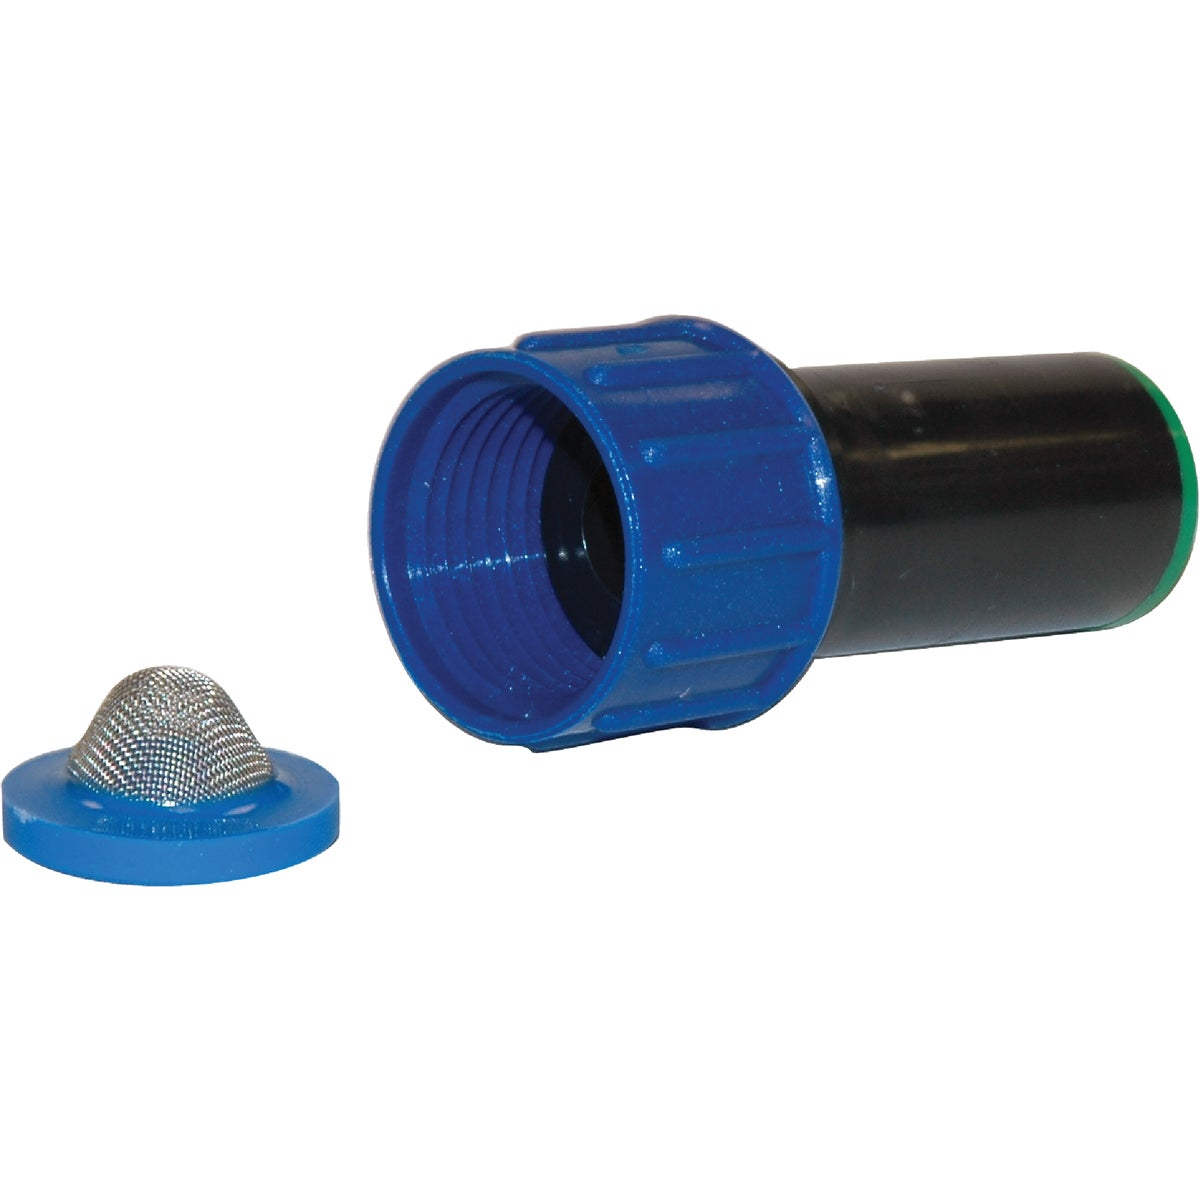 1/2X3/4 ADAPTER SWIVEL